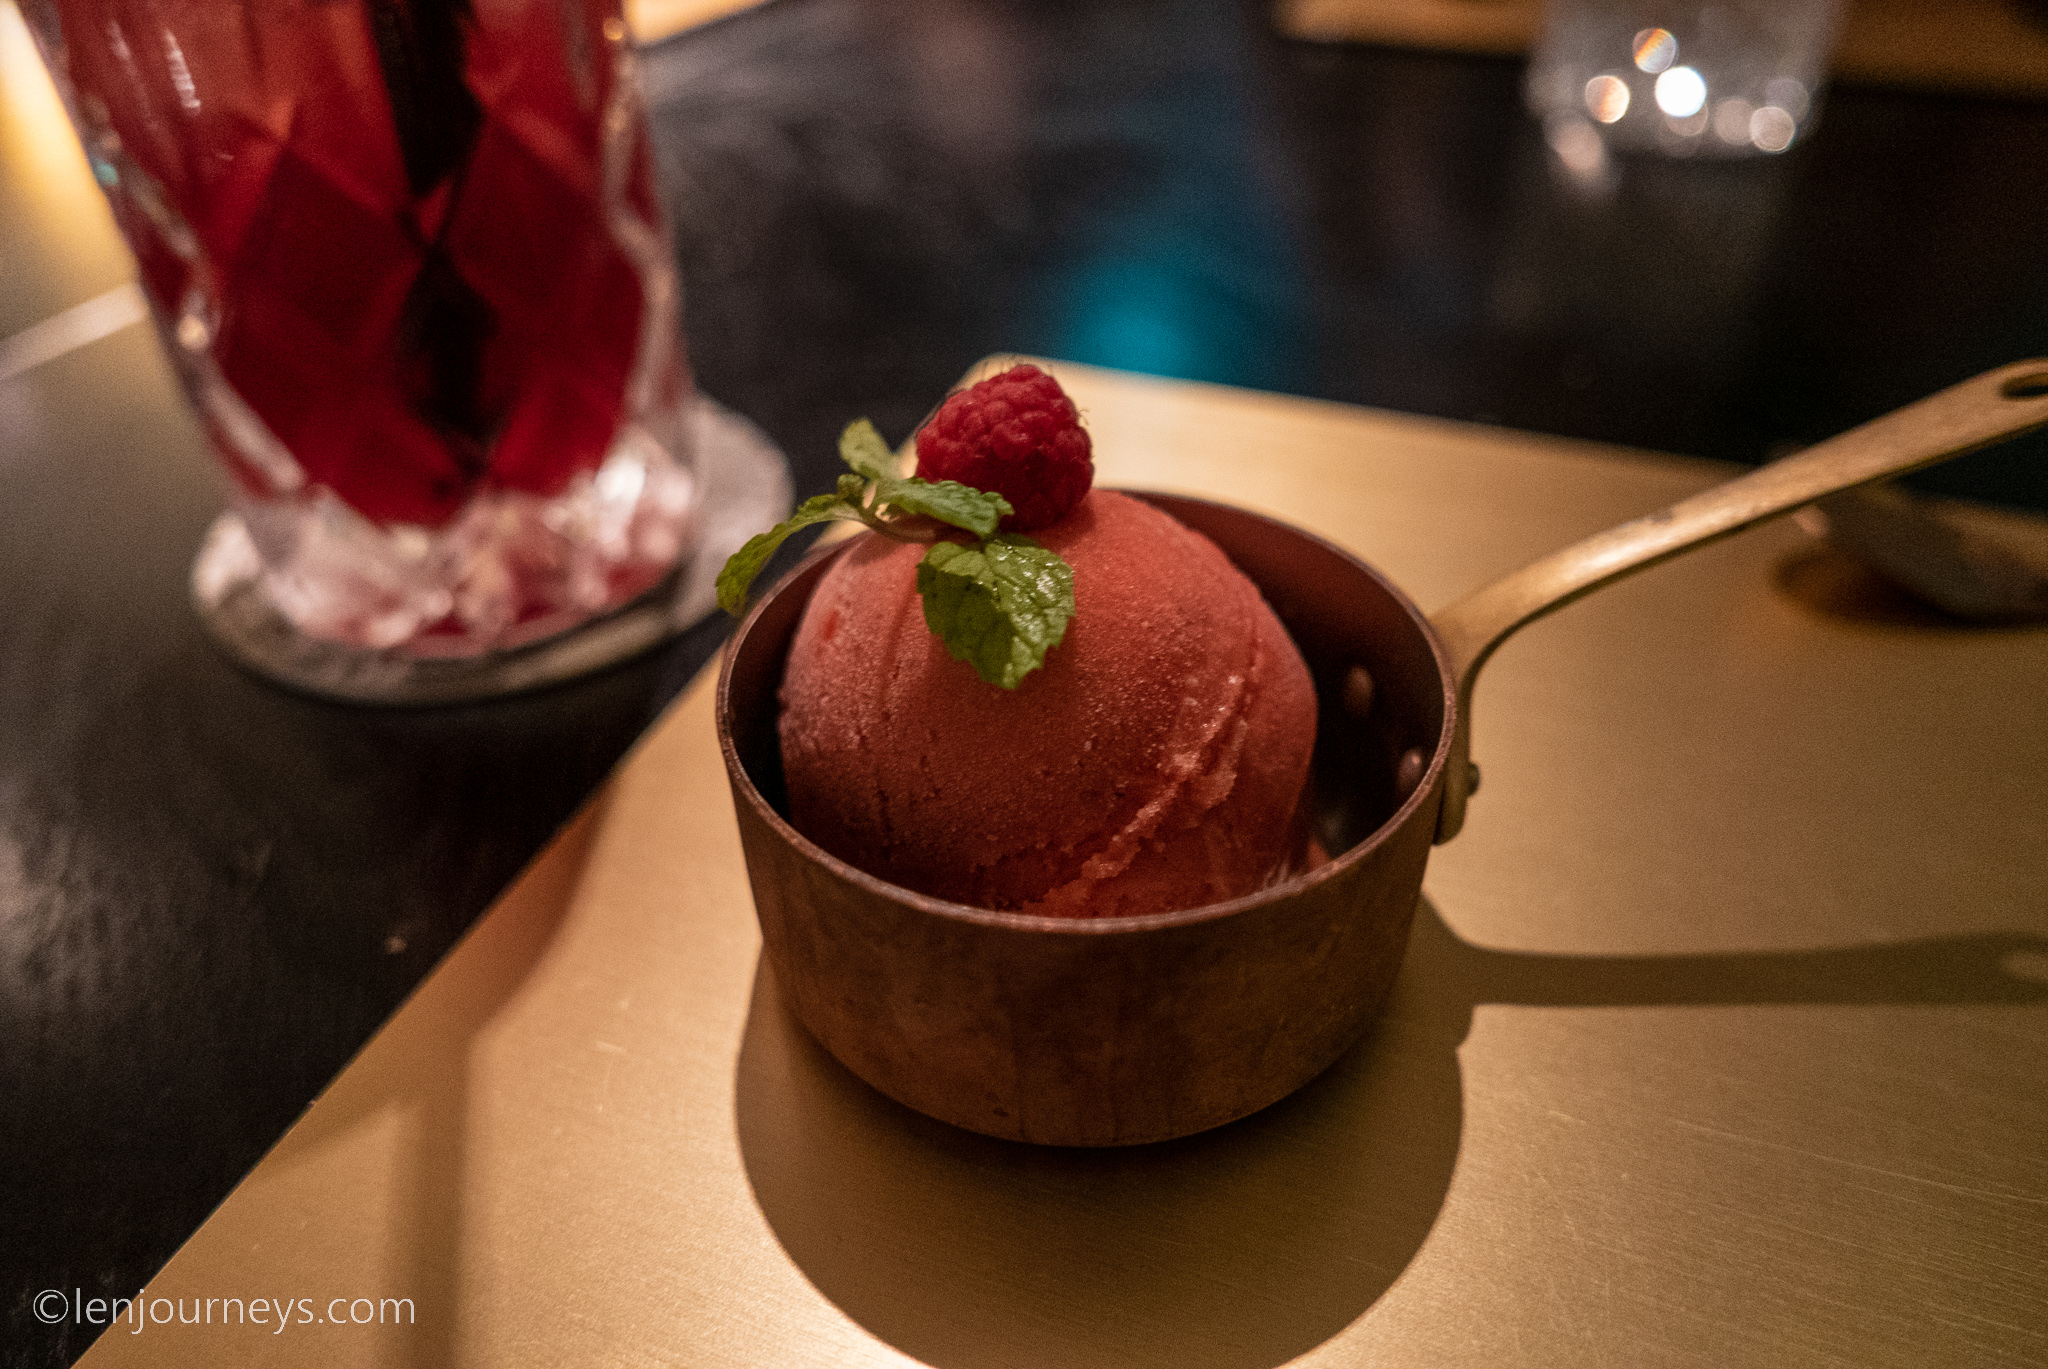 Ice cream and cocktail at angelina